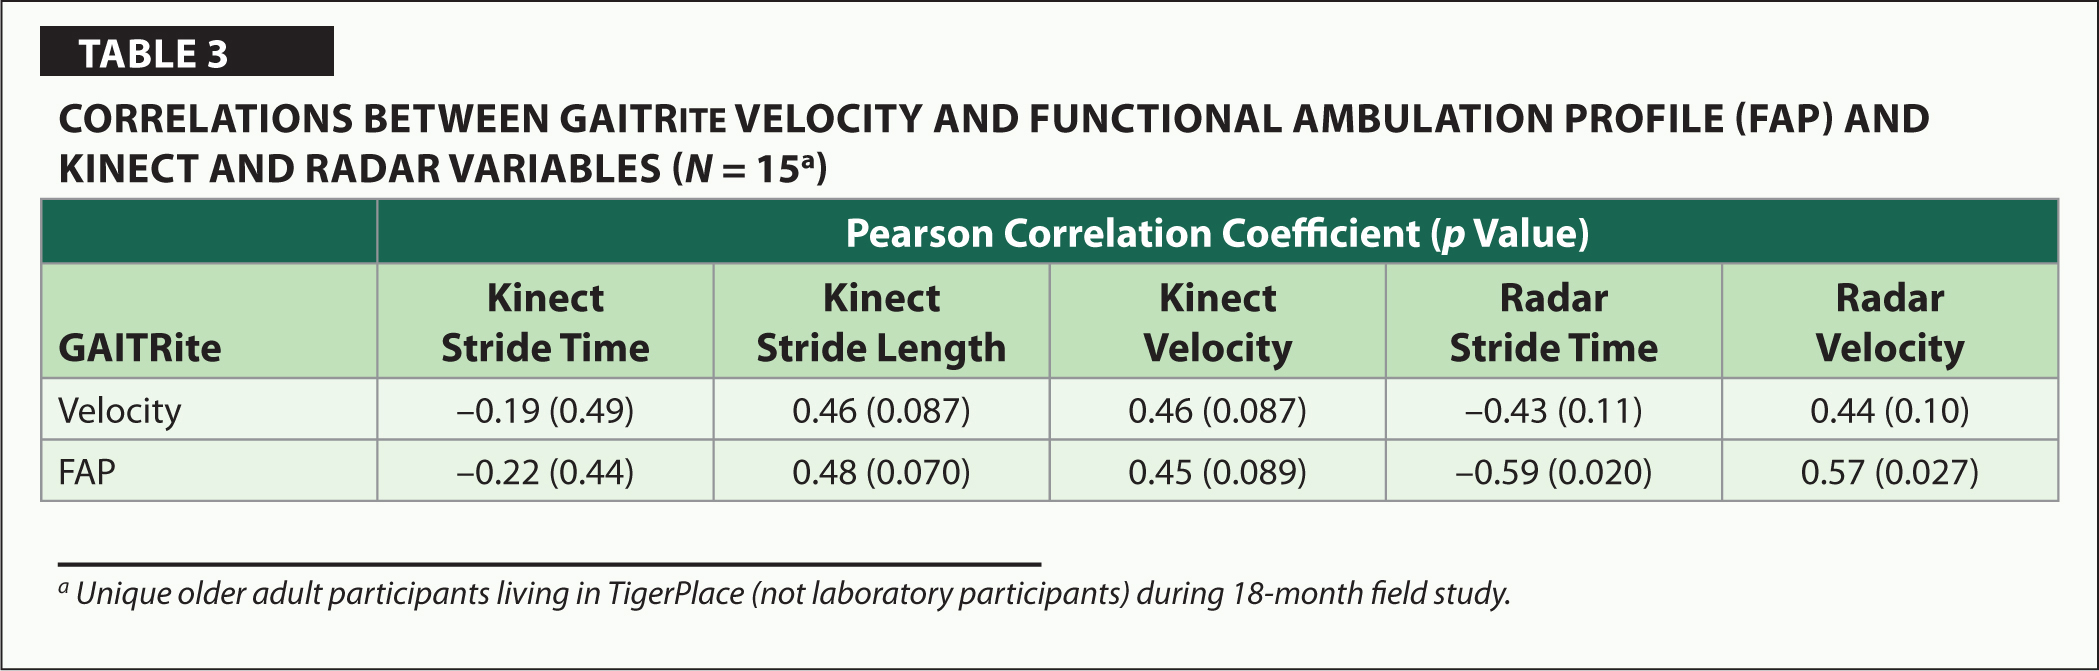 Correlations Between GAITRite Velocity and Functional Ambulation Profile (FAP) and Kinect and Radar Variables (N = 15a)